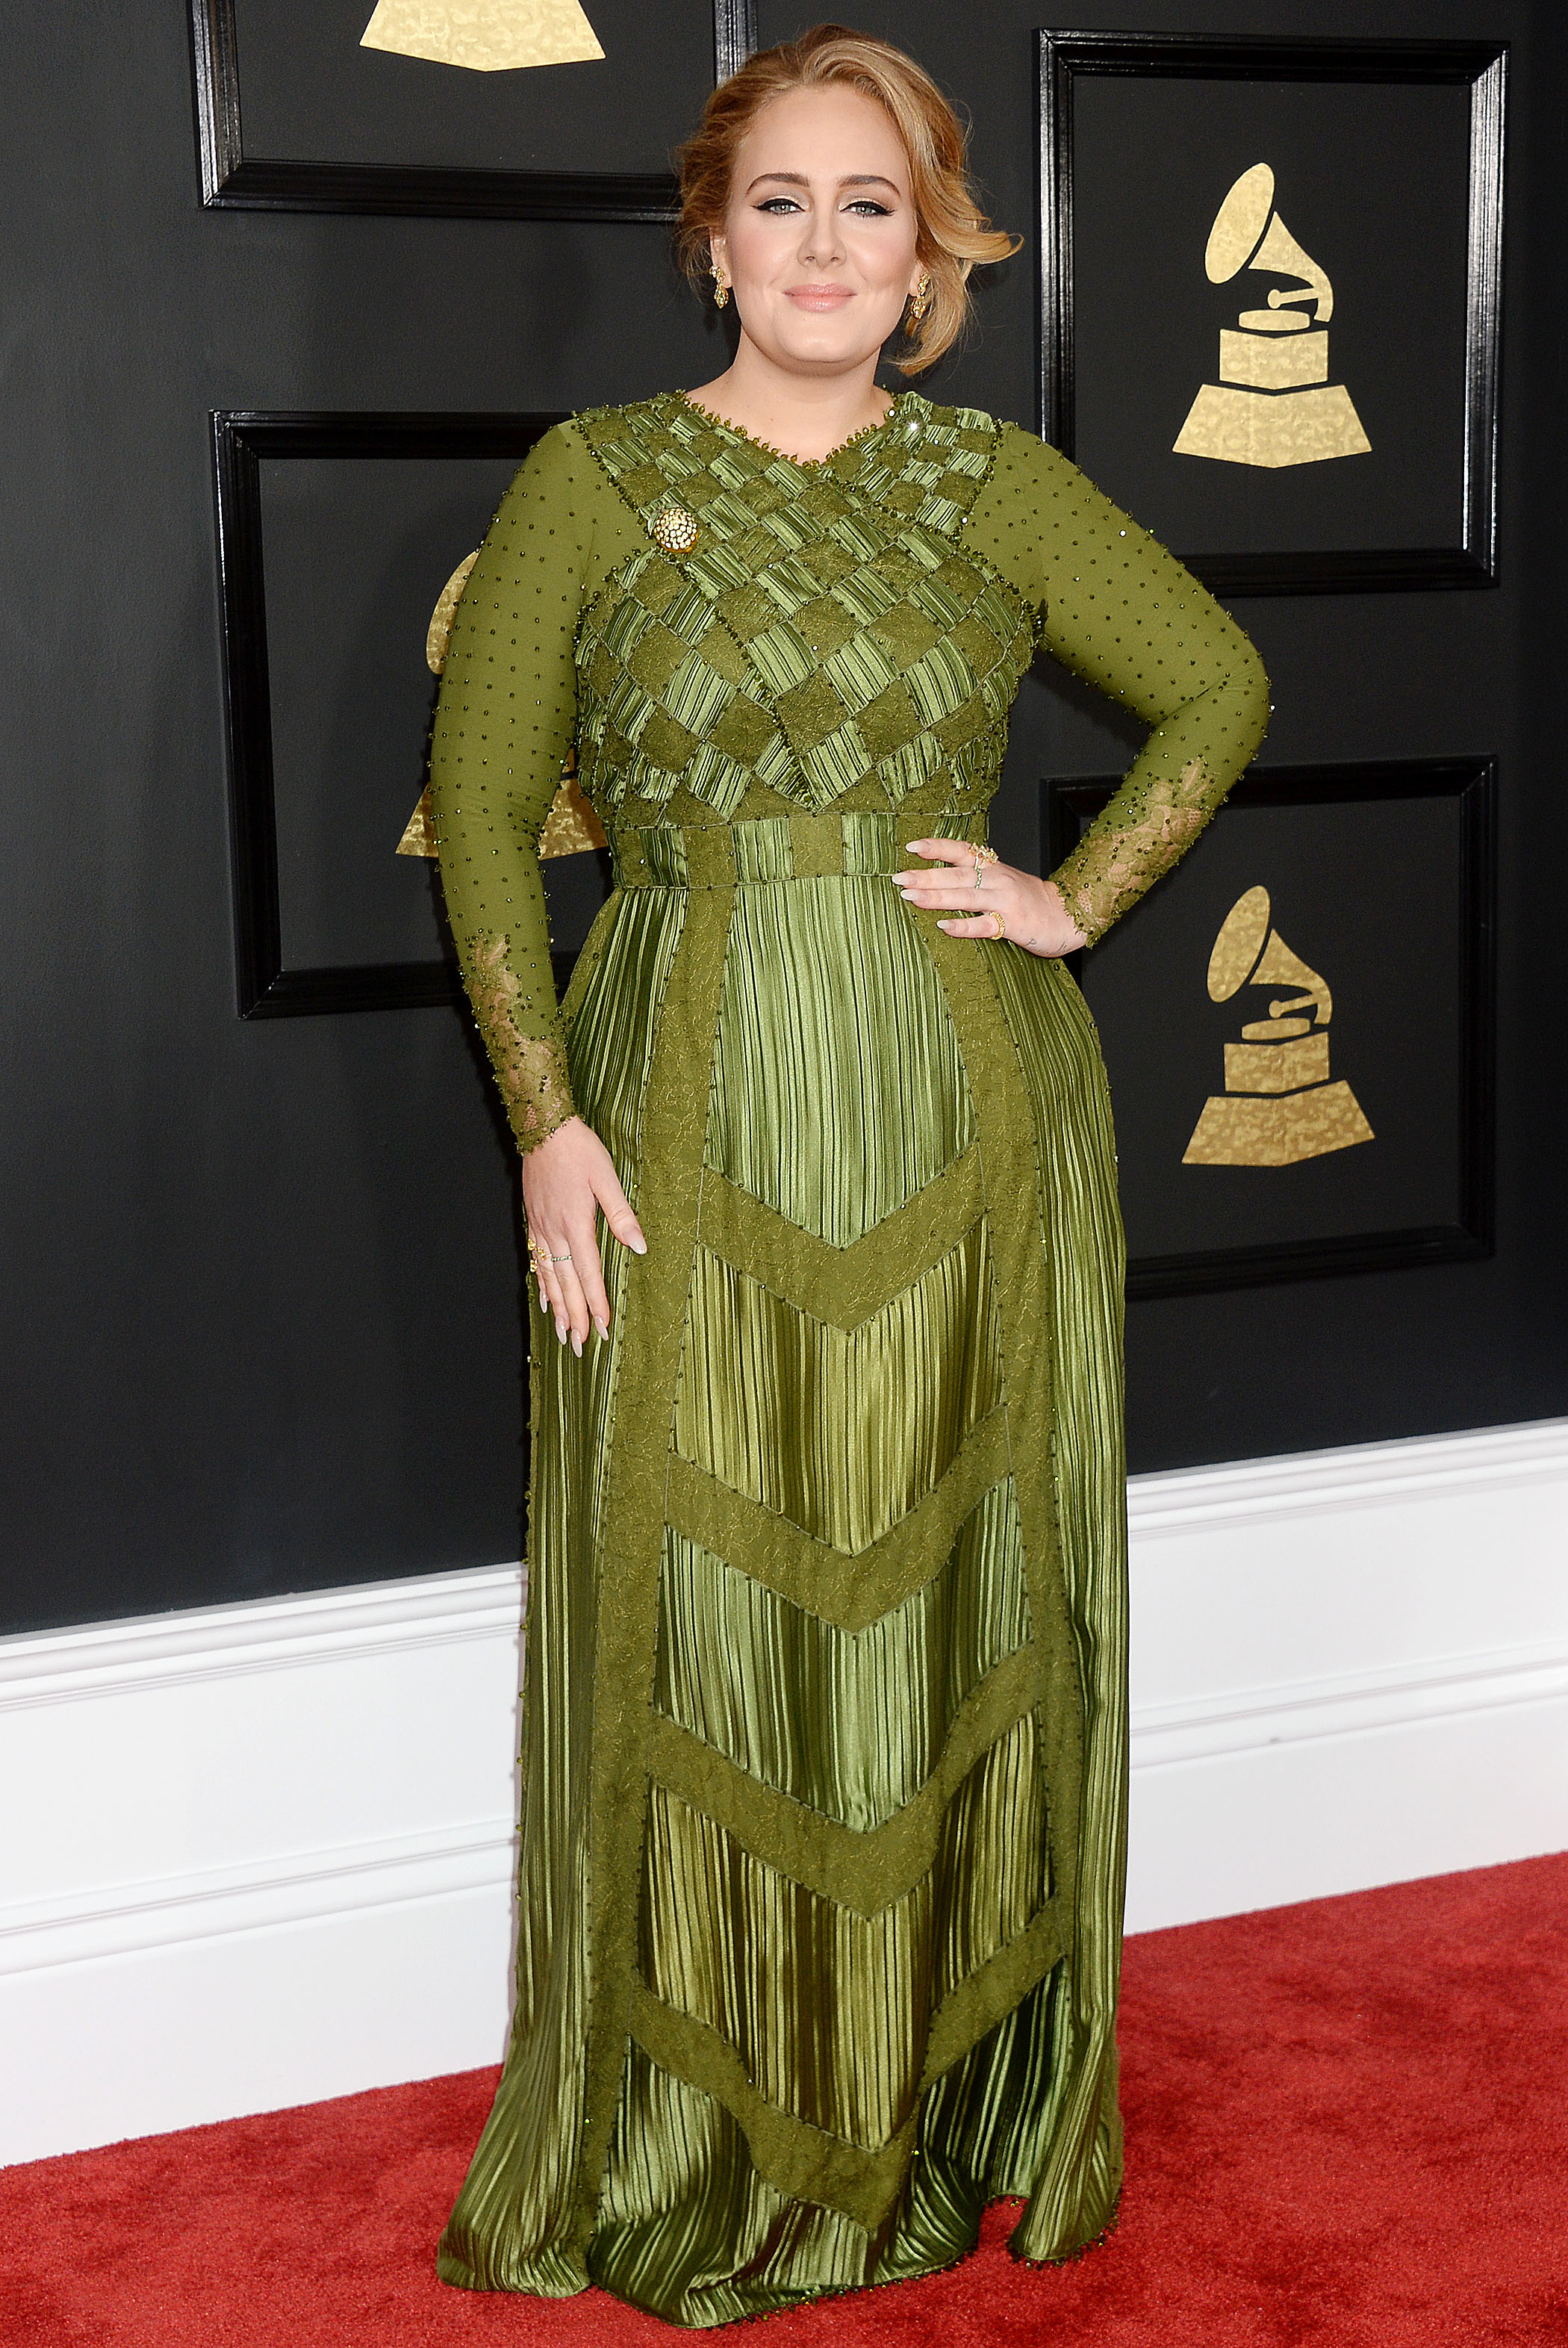 Adele in Givenchy Haute Couture Grammy Awards Fashion 2017